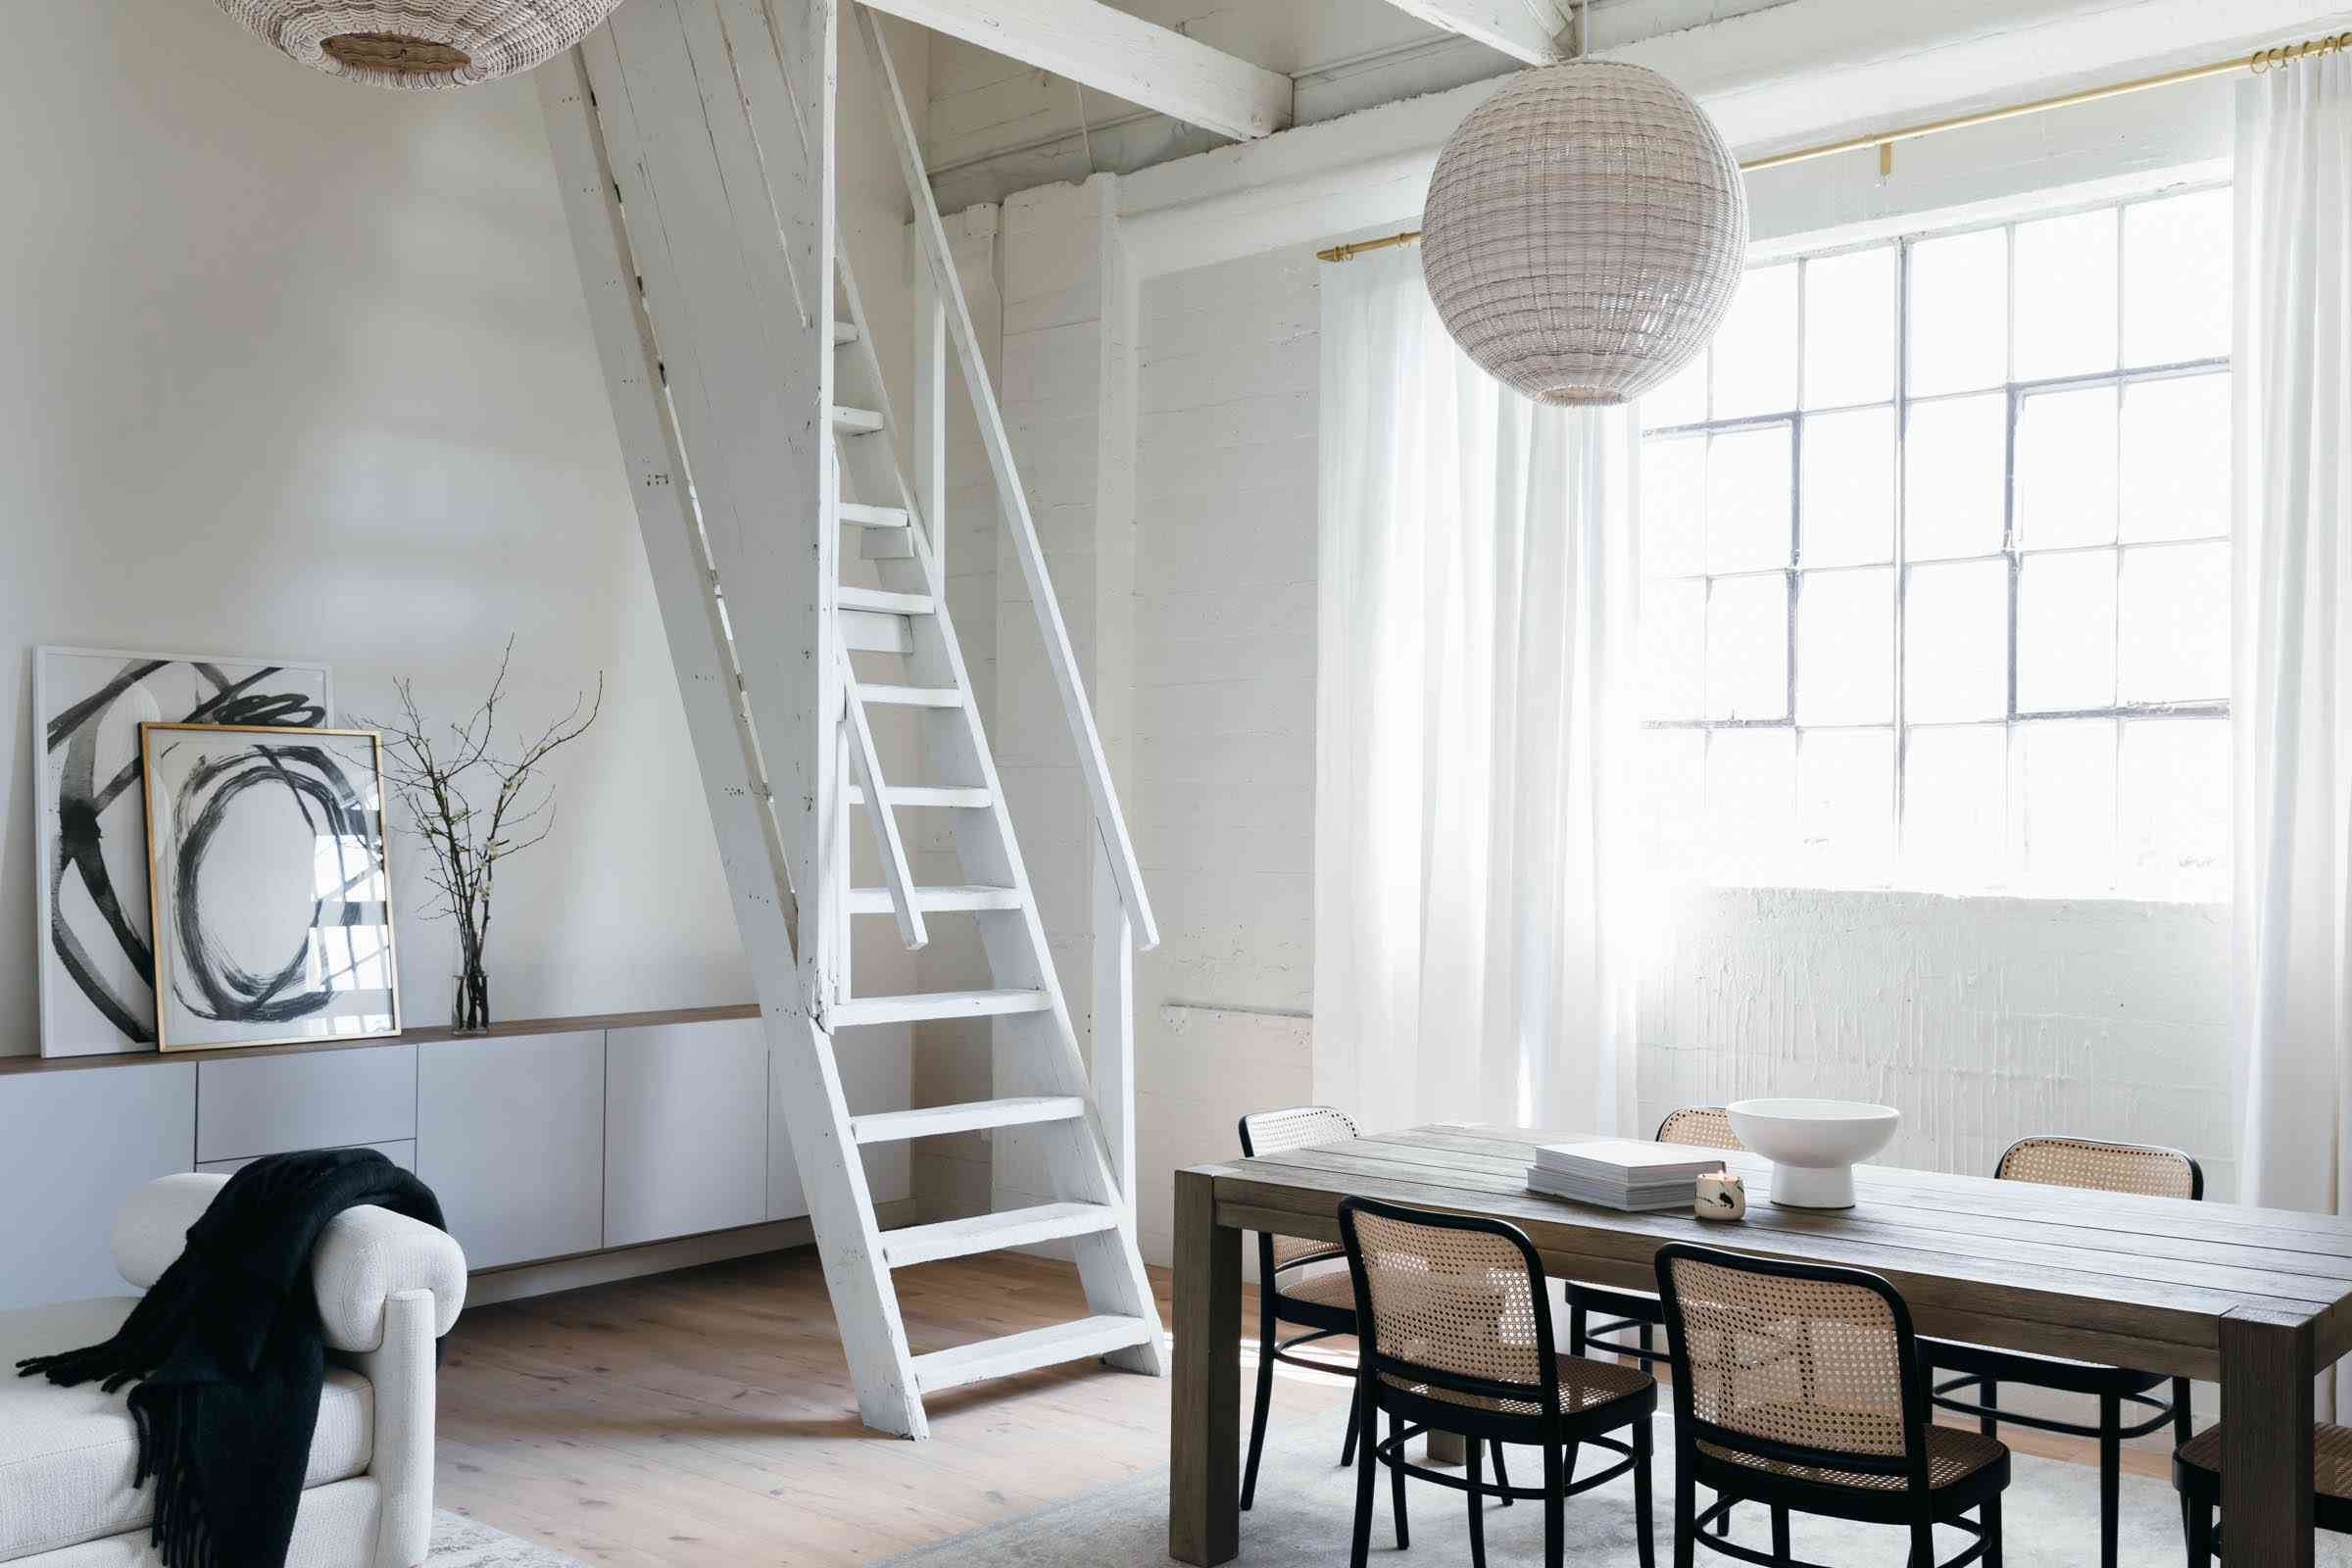 An industrial living space that has been painted white and adorned with white decor